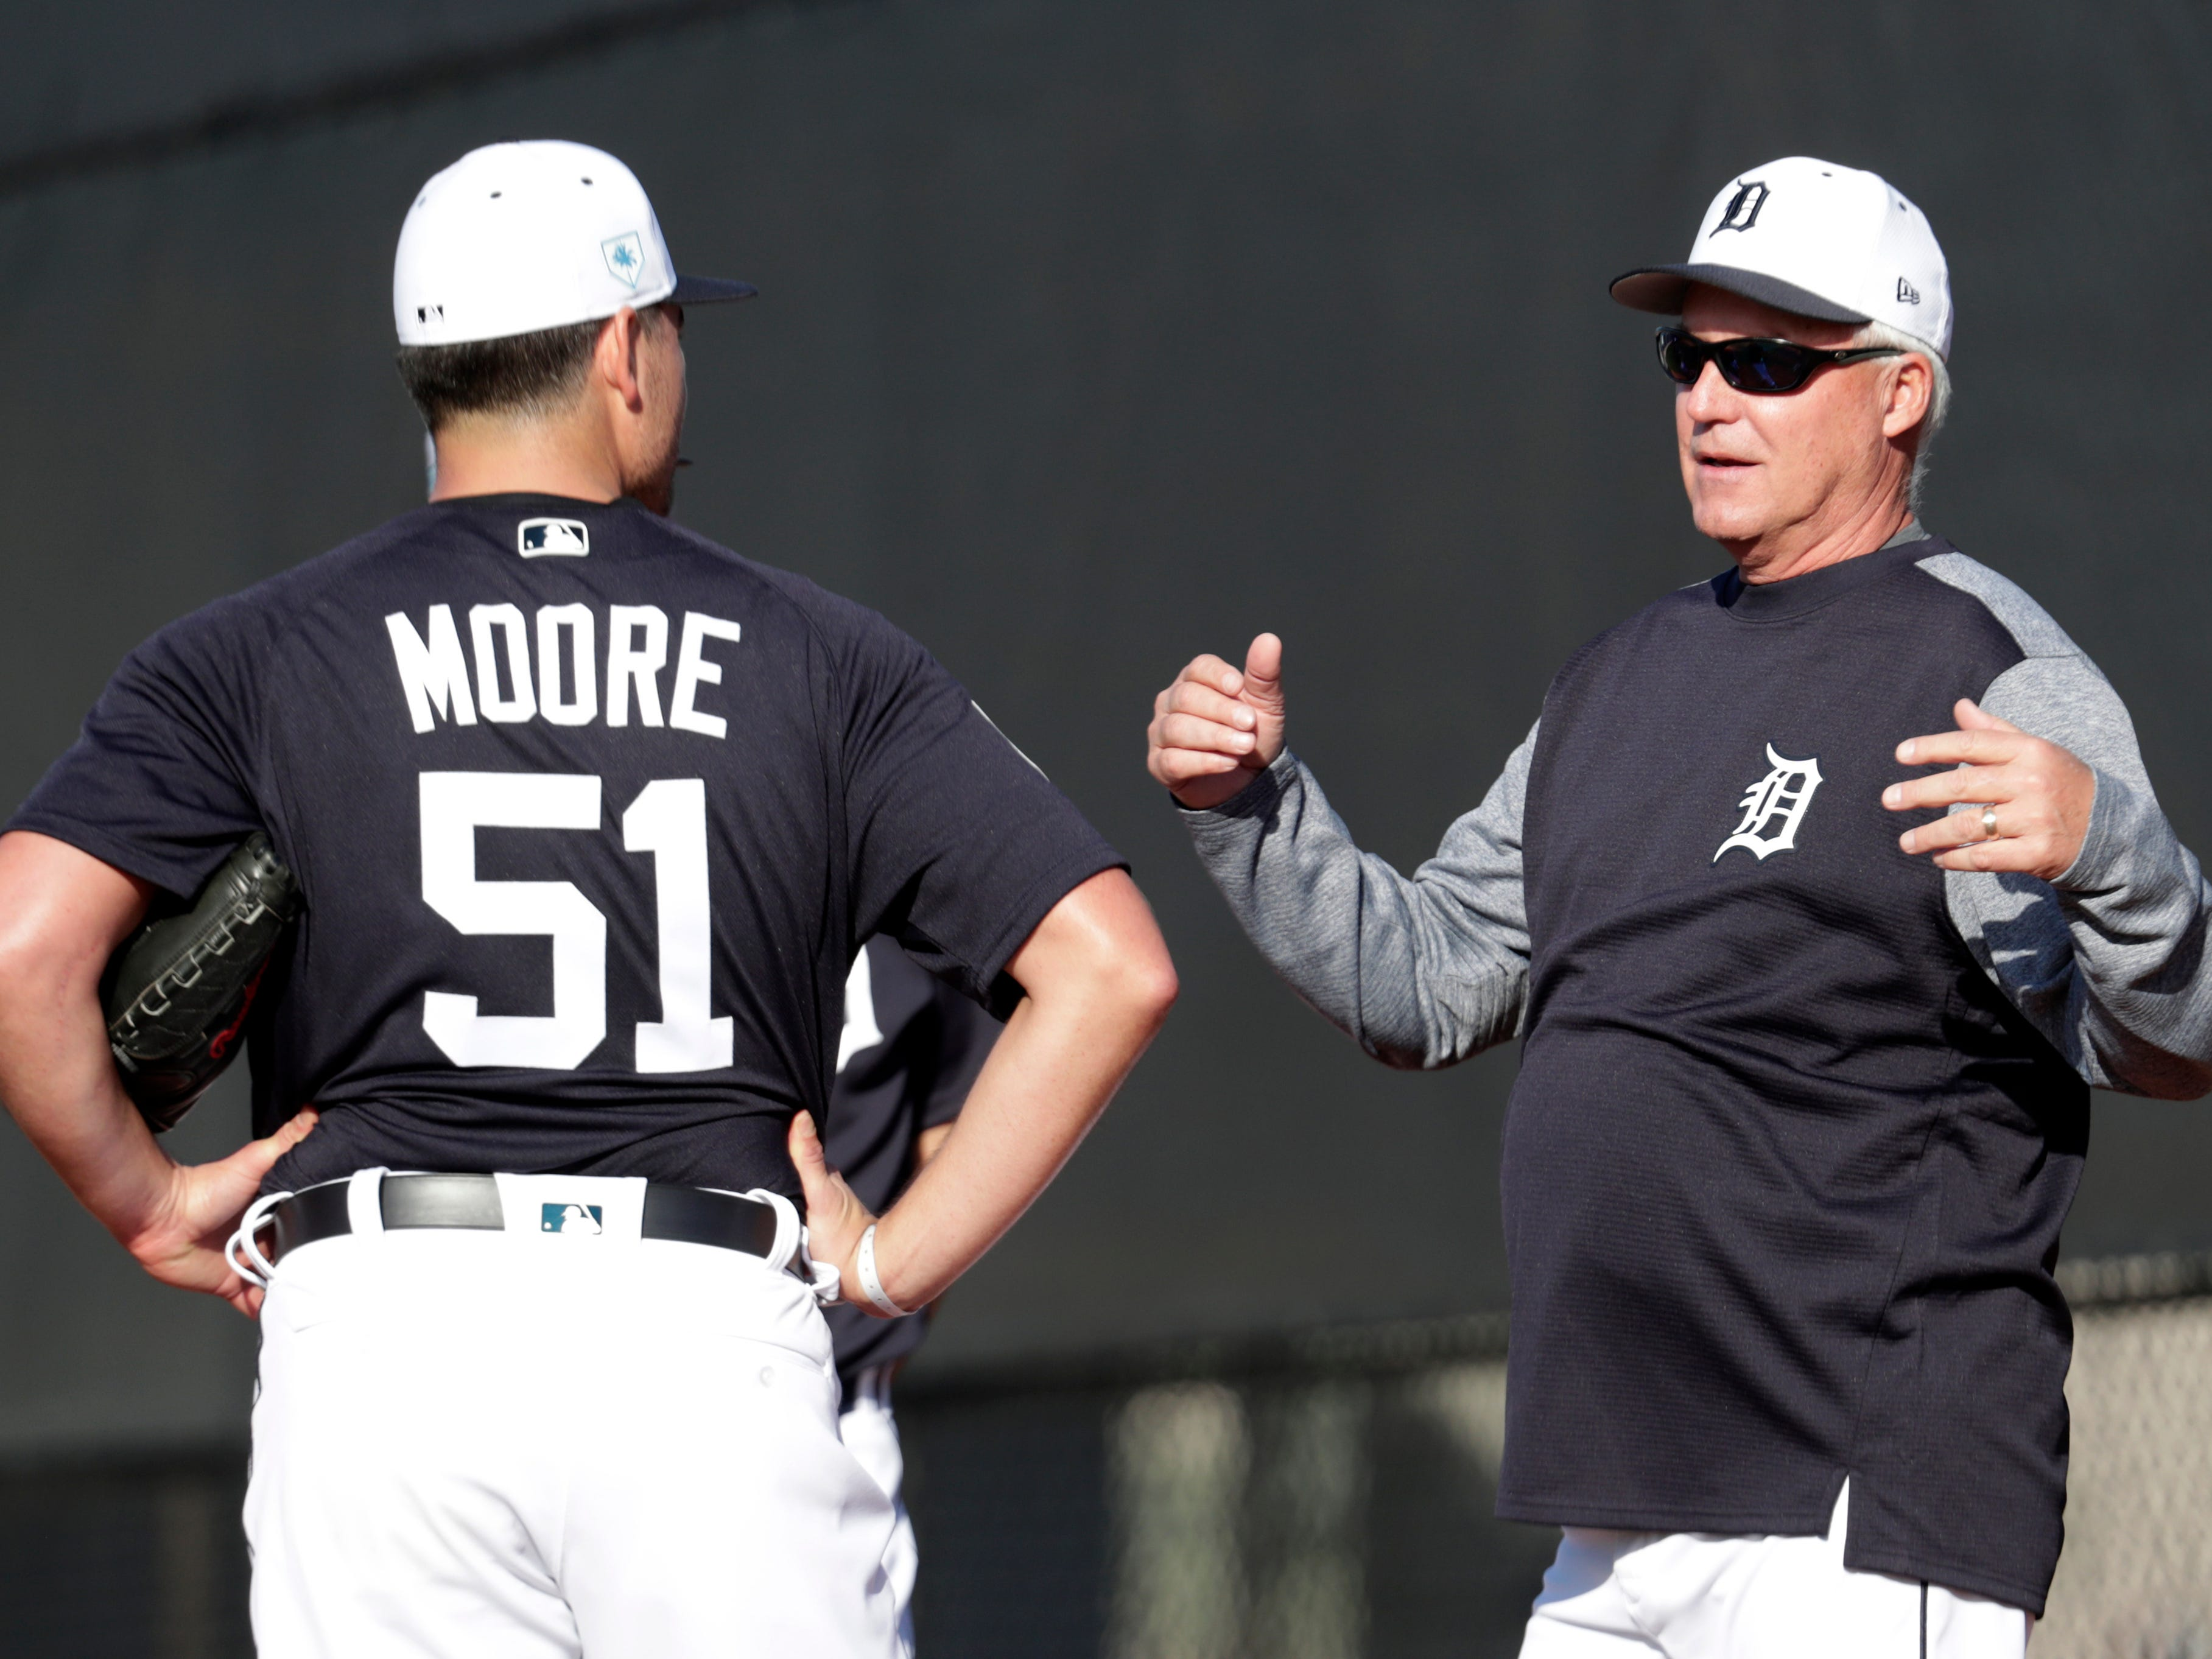 Detroit Tigers pitching coach Rick Anderson, right, talk with pitcher Matt Moore at the Tigers spring training baseball facility, Friday, Feb. 15, 2019, in Lakeland, Fla.